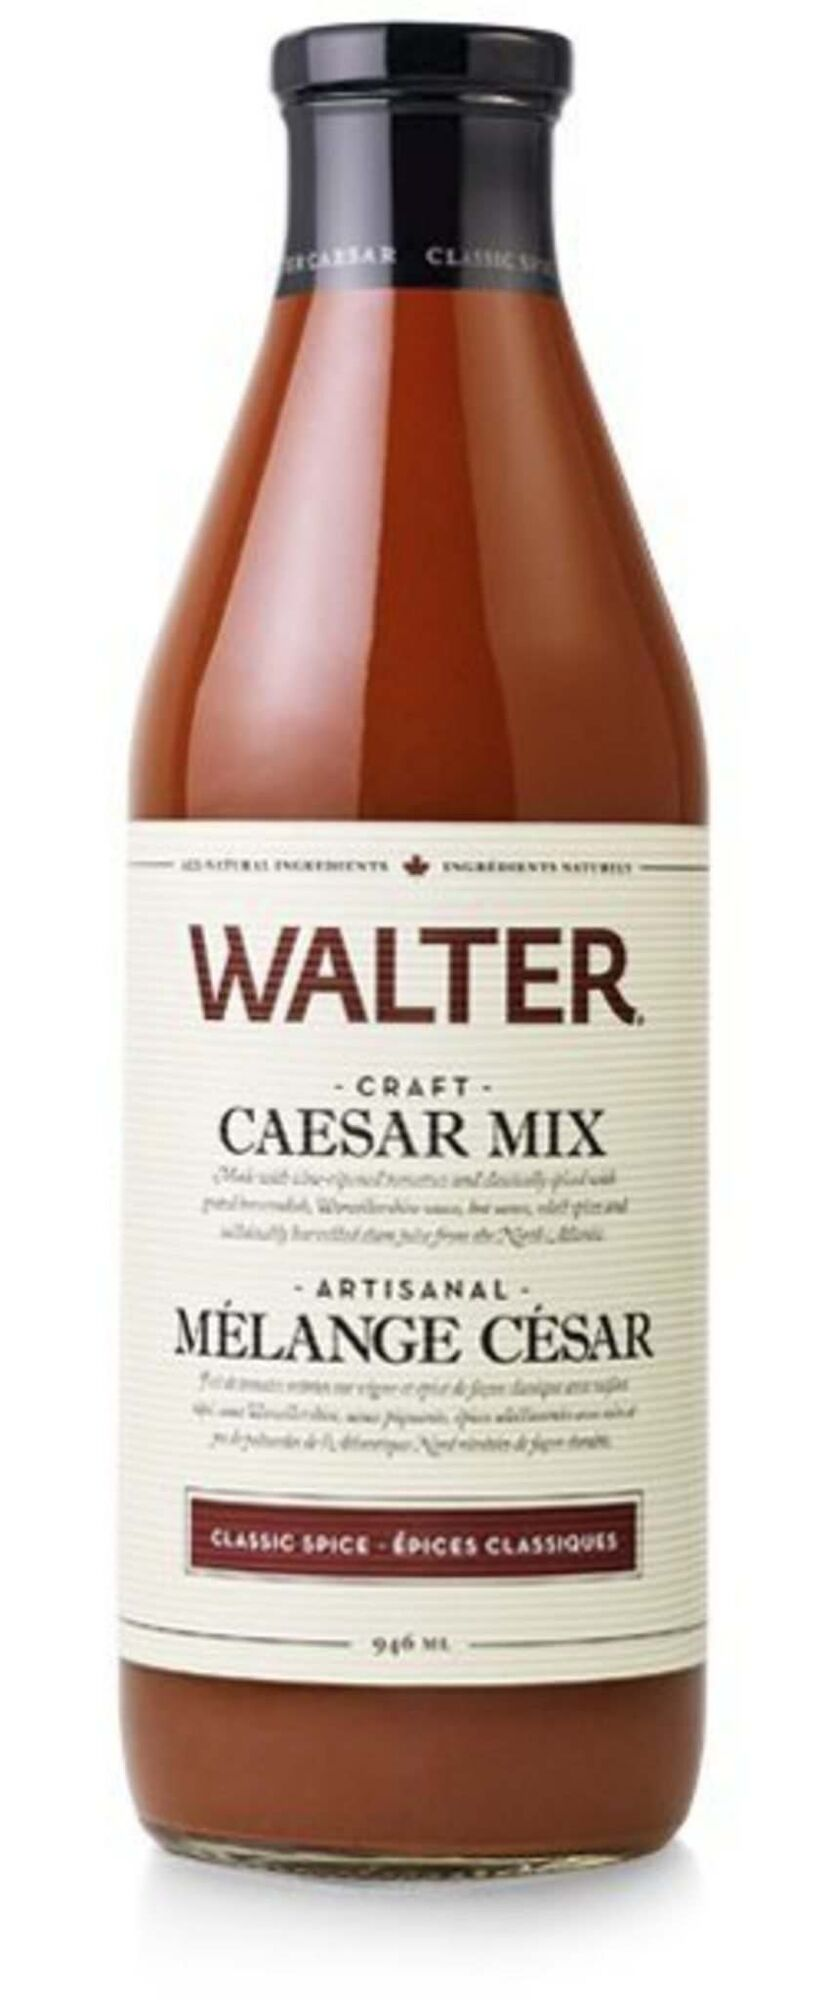 """<strong>Walter Craft Caesar Mix – Classic Spice</strong> (around $6-$7/946ml bottle)</p><p><strong>The skinny:</strong> This artisanal-style Caesar mix is made using vine-ripened tomatoes, grated horseradish and other natural ingredients, contains no artificial MSG added, is made in """"craft small batch production"""" and is Ocean Wise recommended (contains """"sustainably harvested clam juice from the North Atlantic""""). Comes in a """"Mild Spice"""" version as well. It's also half the size for nearly twice the price.</p><p><strong>On its own:</strong> The Walter is the thickest in appearance — it pretty much looks like tomato juice or gazpacho. Aromatically it brings tomato and almost a raw meat note on the nose, with fresh seafood and chopped bell pepper and herb notes in there as well. It's the richest on the palate, with tart tomato, celery salt, pepper and underlying, subtle clam flavours that are actually pleasant. Also features a Tabasco note and a long finish.</p><p><strong>In a Caesar:</strong> The tomato flavour is slightly more robust here than the others. It's got great texture, the clam component is subtle but not overpowered by spice, and green vegetable notes here are tasty.</p><p><strong>Overall impression:</strong> Worth a try for the texture alone, never mind the impressive array of balanced flavours. Not as salty as the Mott's or French's, for better or worse. Season accordingly.</p></p>"""